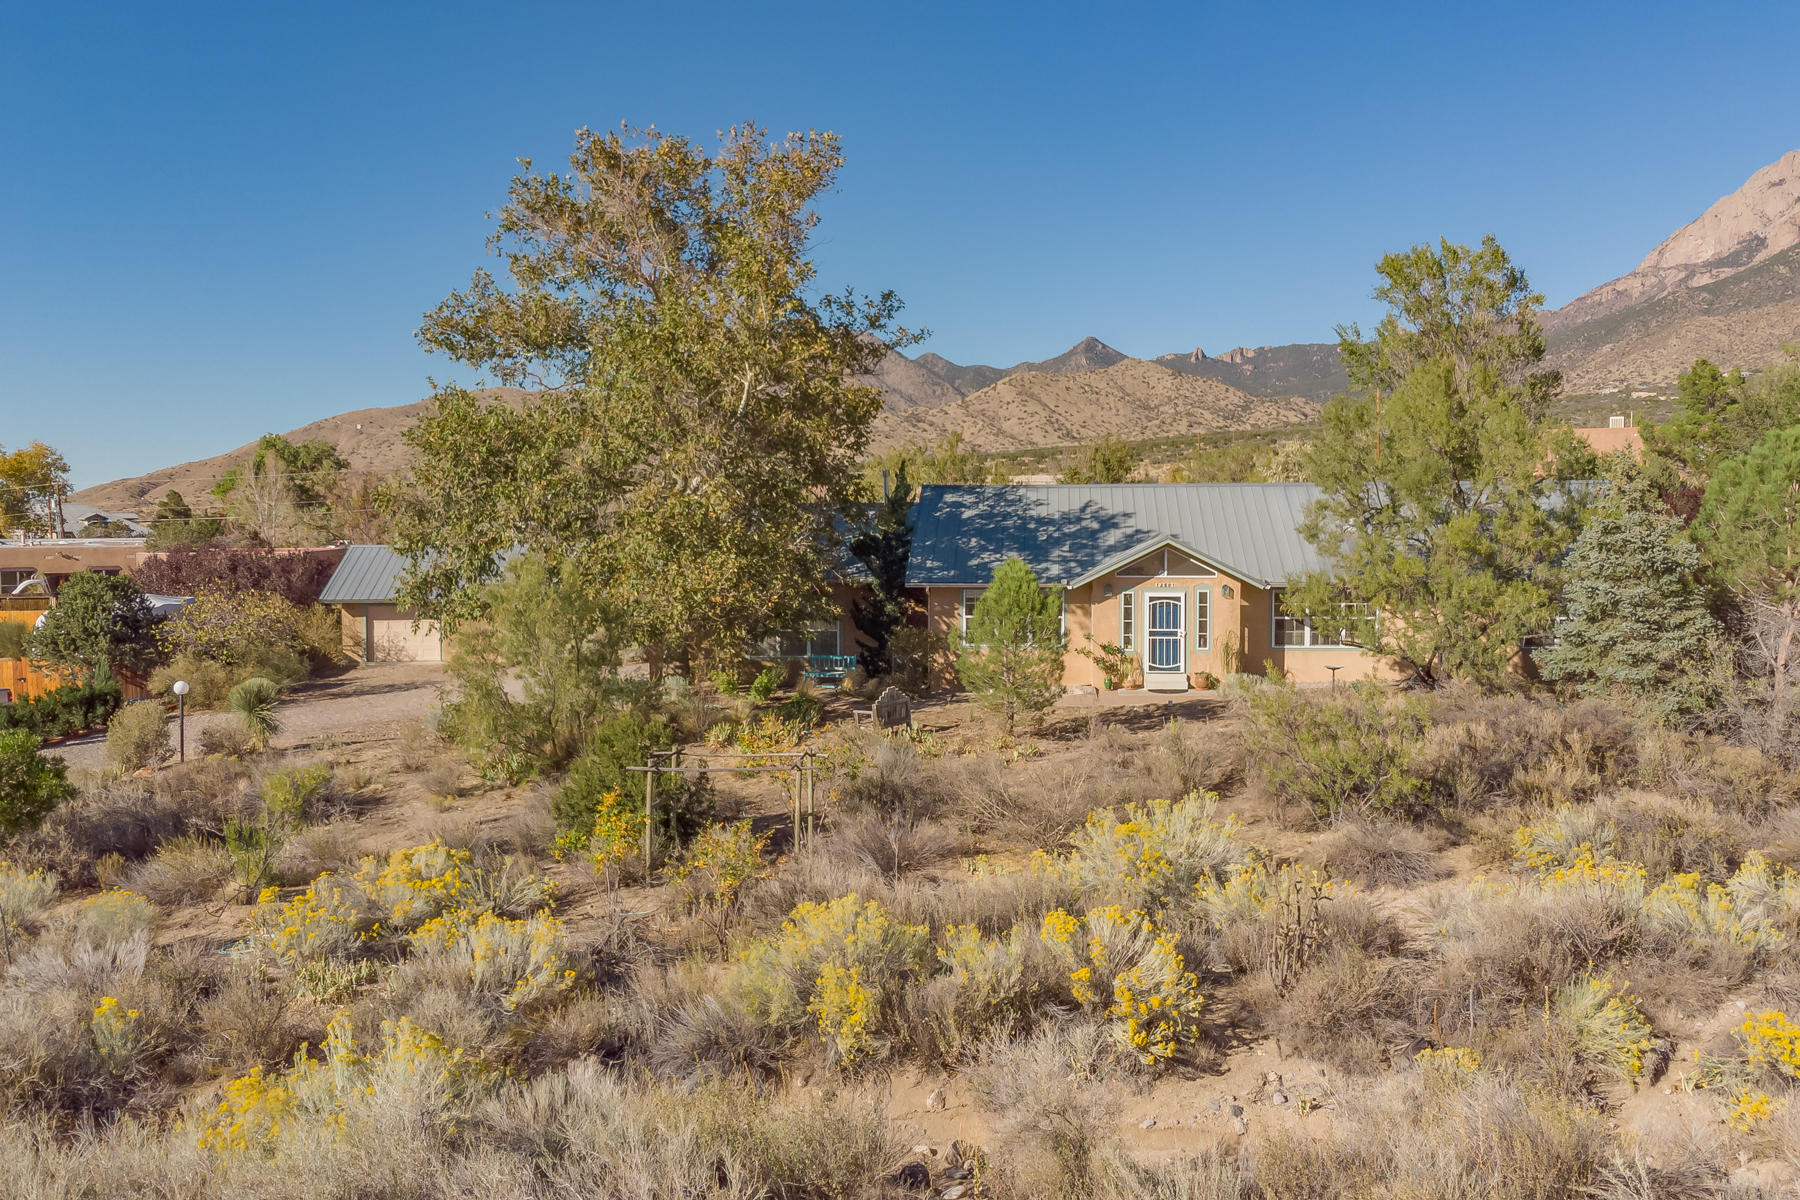 Want to feel like you're away from the city? Look no further! This North Abq Acres beauty has almost an acre of mature landscaping. It's a single story that boasts an oversize 2 car garage + detached 3rd car gar connected to a studio/workshop (whatever you need it to be). Find comfort in this space w/a cozy wood burning stove and ceiling fan. An atrium welcomes you into the main house w/open floor plan, polished brick floors, and high ceilings. Granite counters, stainless appliances, and a moveable island in the kitchen. Refr A/C, ceiling fans, forced air heater, and fireplace for just the right temp. Add'l amenities included but not limited to instant hot water, washtub in laundry, light dimmers, tile in the baths, a nice long cov'd patio, grass, fruit trees, garden box, and Zen area.